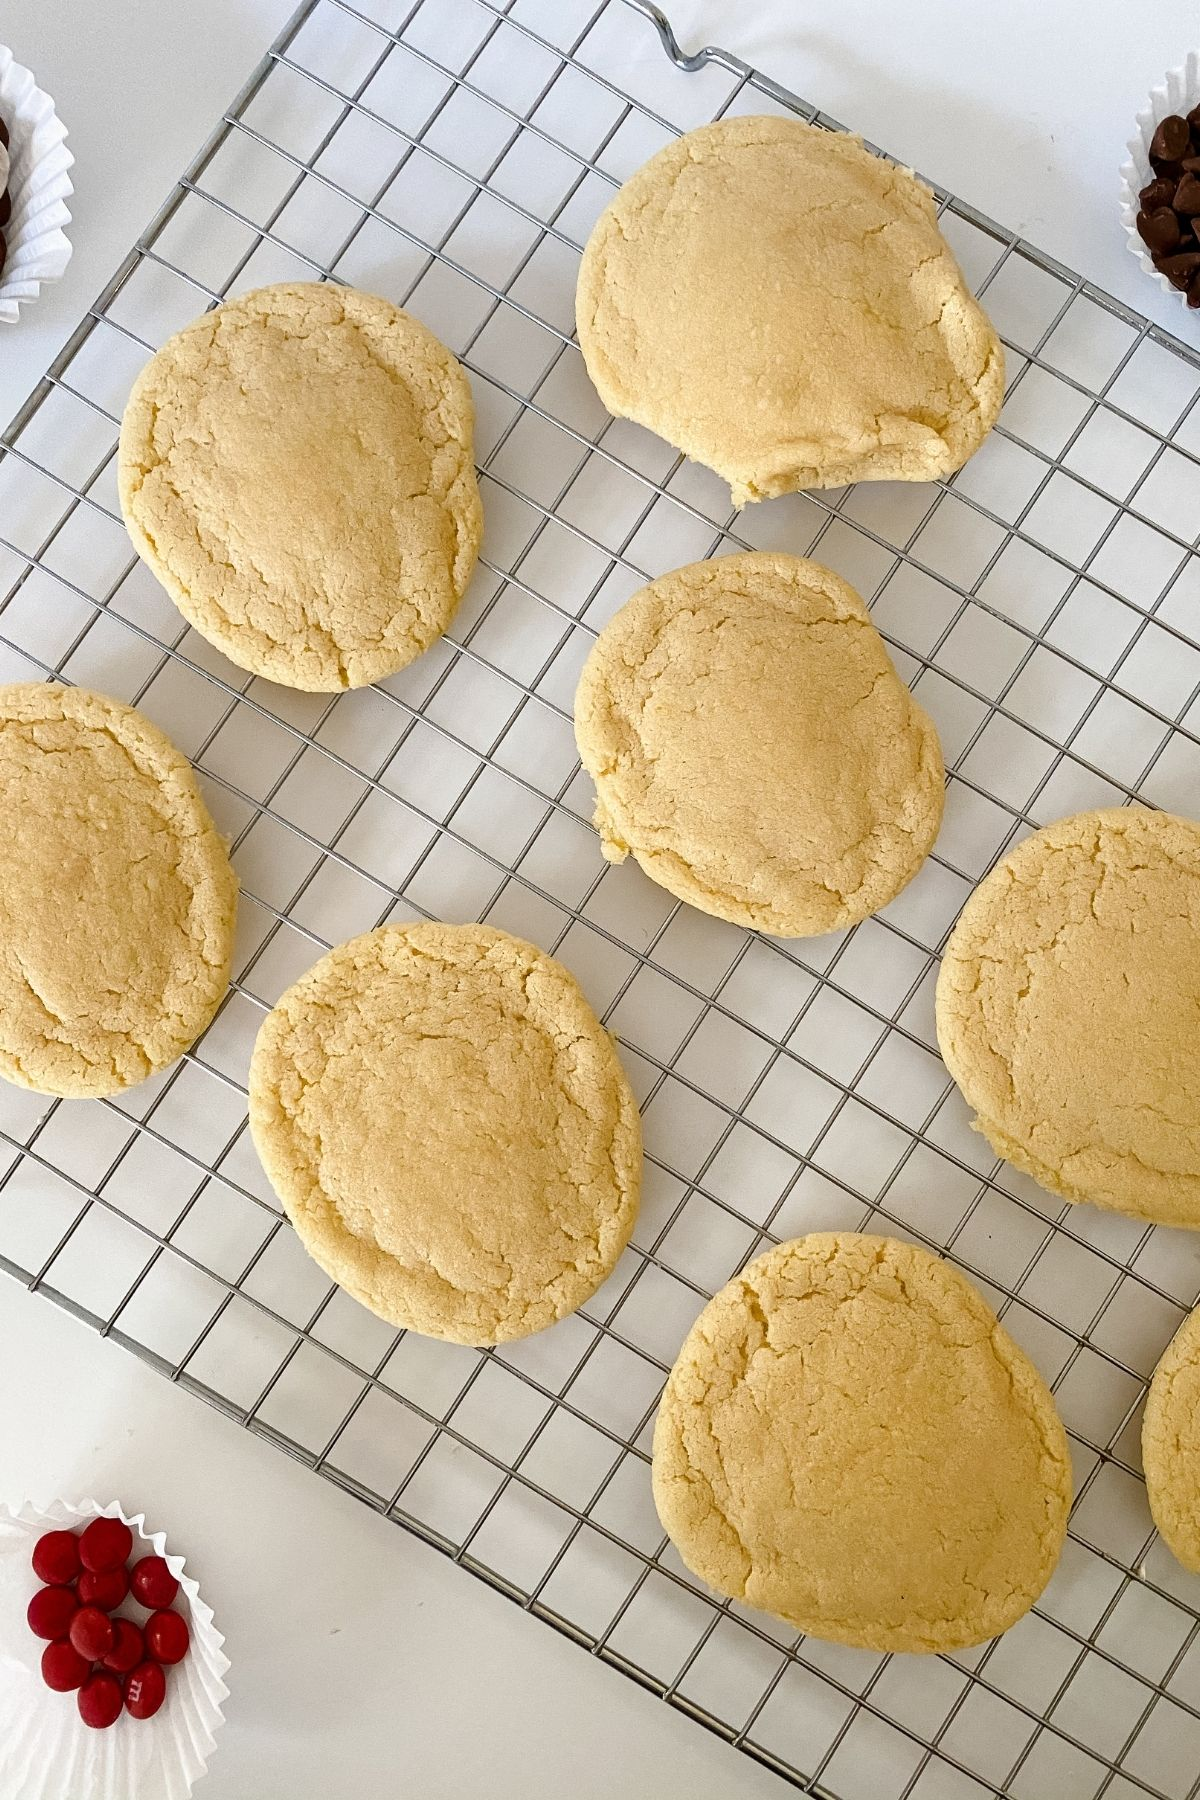 Undecorated cookies on wire rack